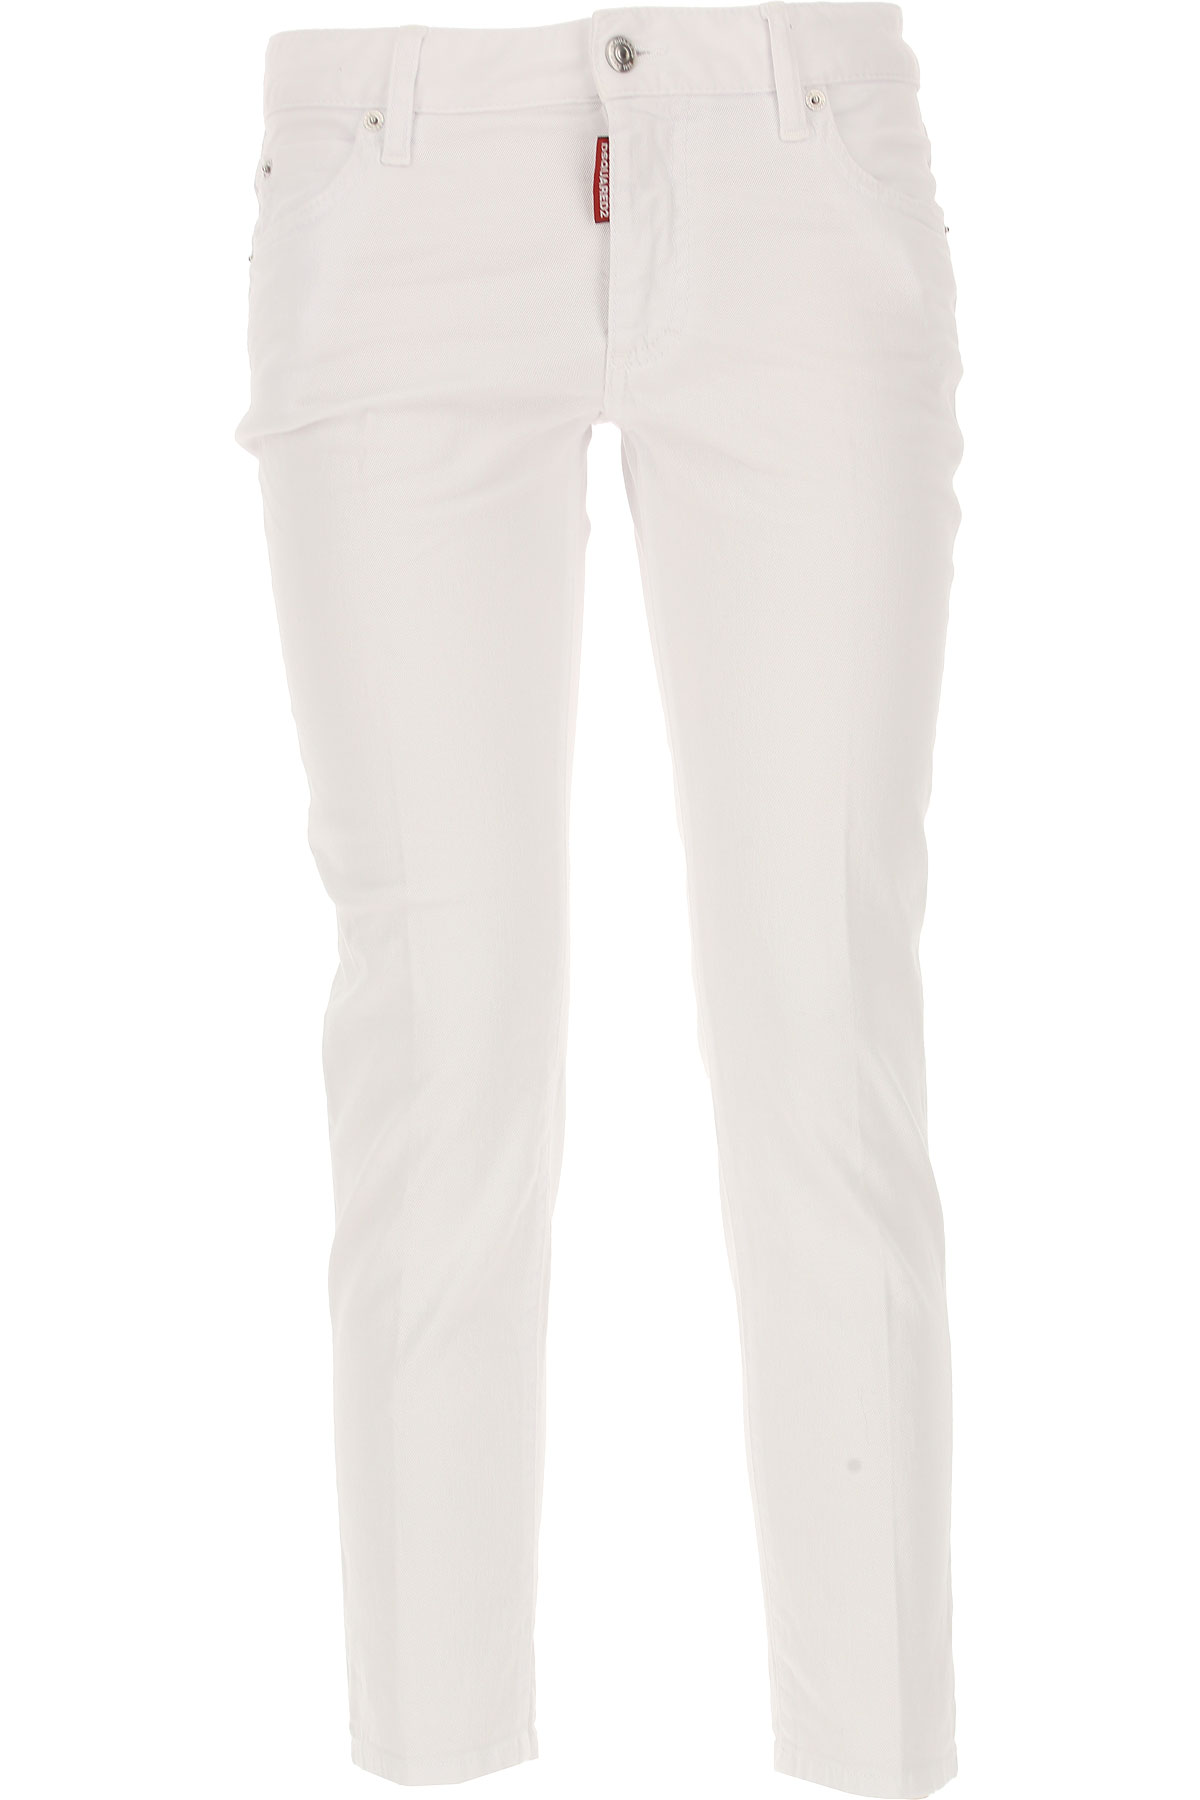 Dsquared2 Jeans, White, Cotton, 2017, 24 26 28 30